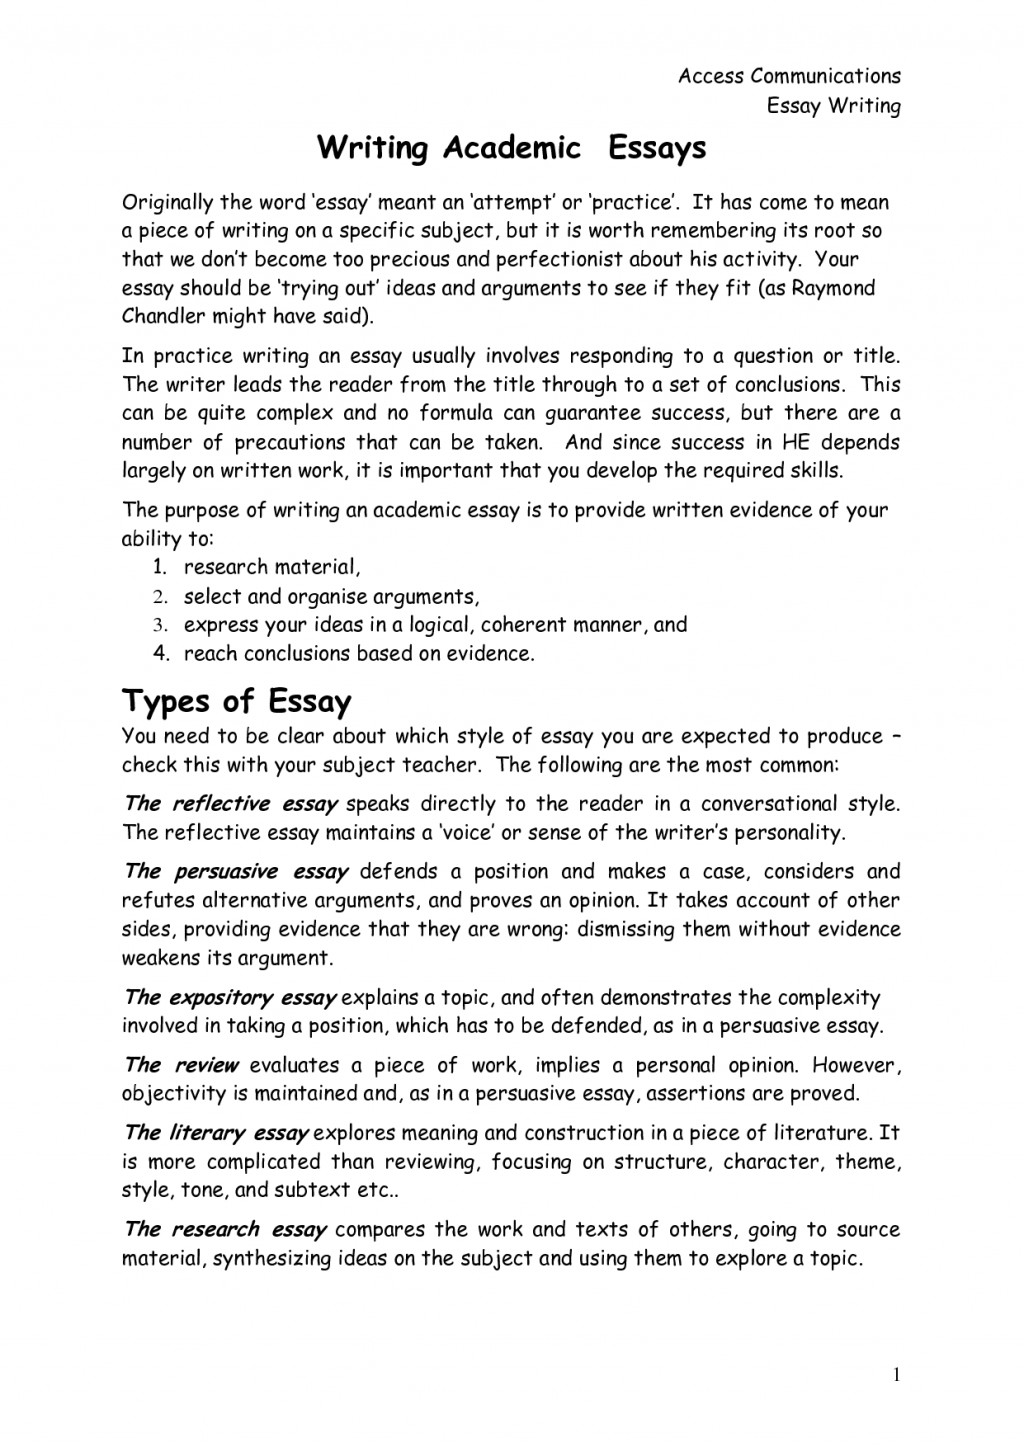 017 Essay Example Write For Me Amazing College My Cheap Uk Discount Code Large